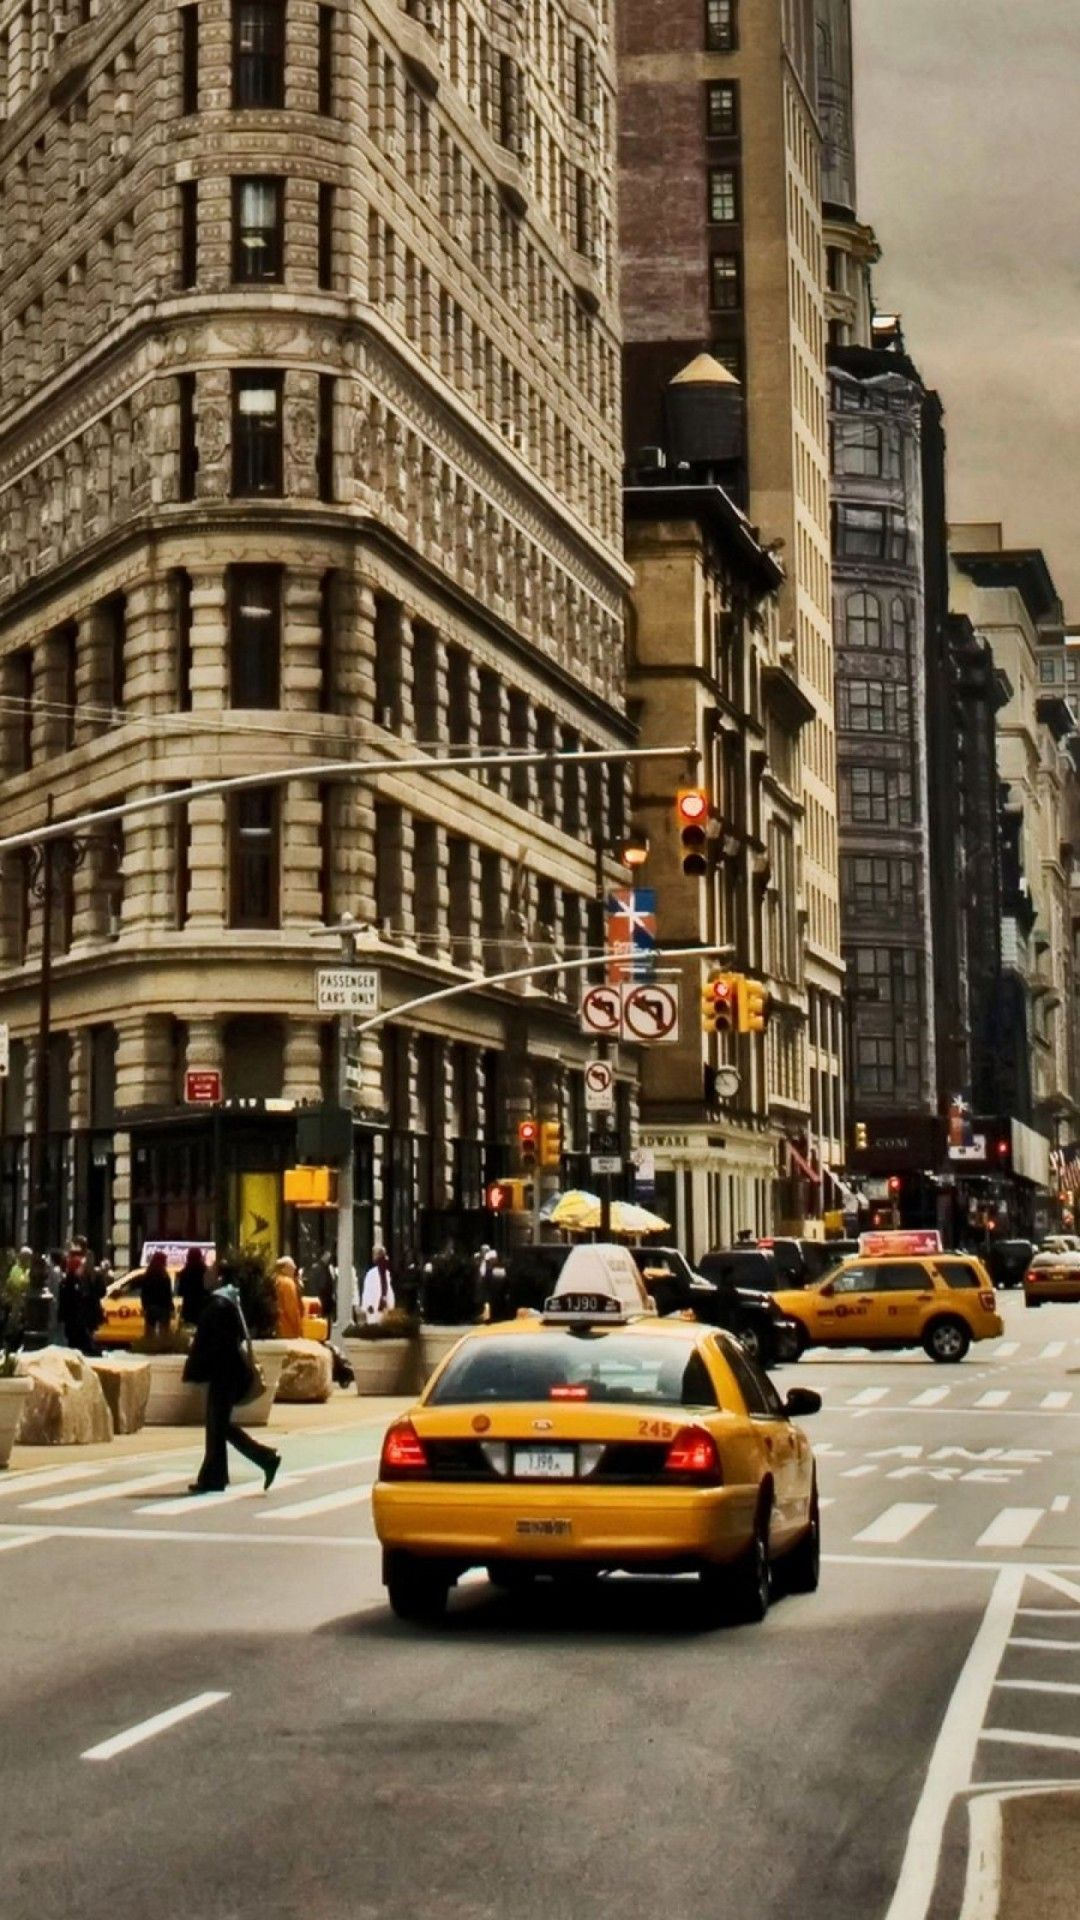 New York Iphone Wallpapers Top Free New York Iphone Backgrounds Wallpaperaccess